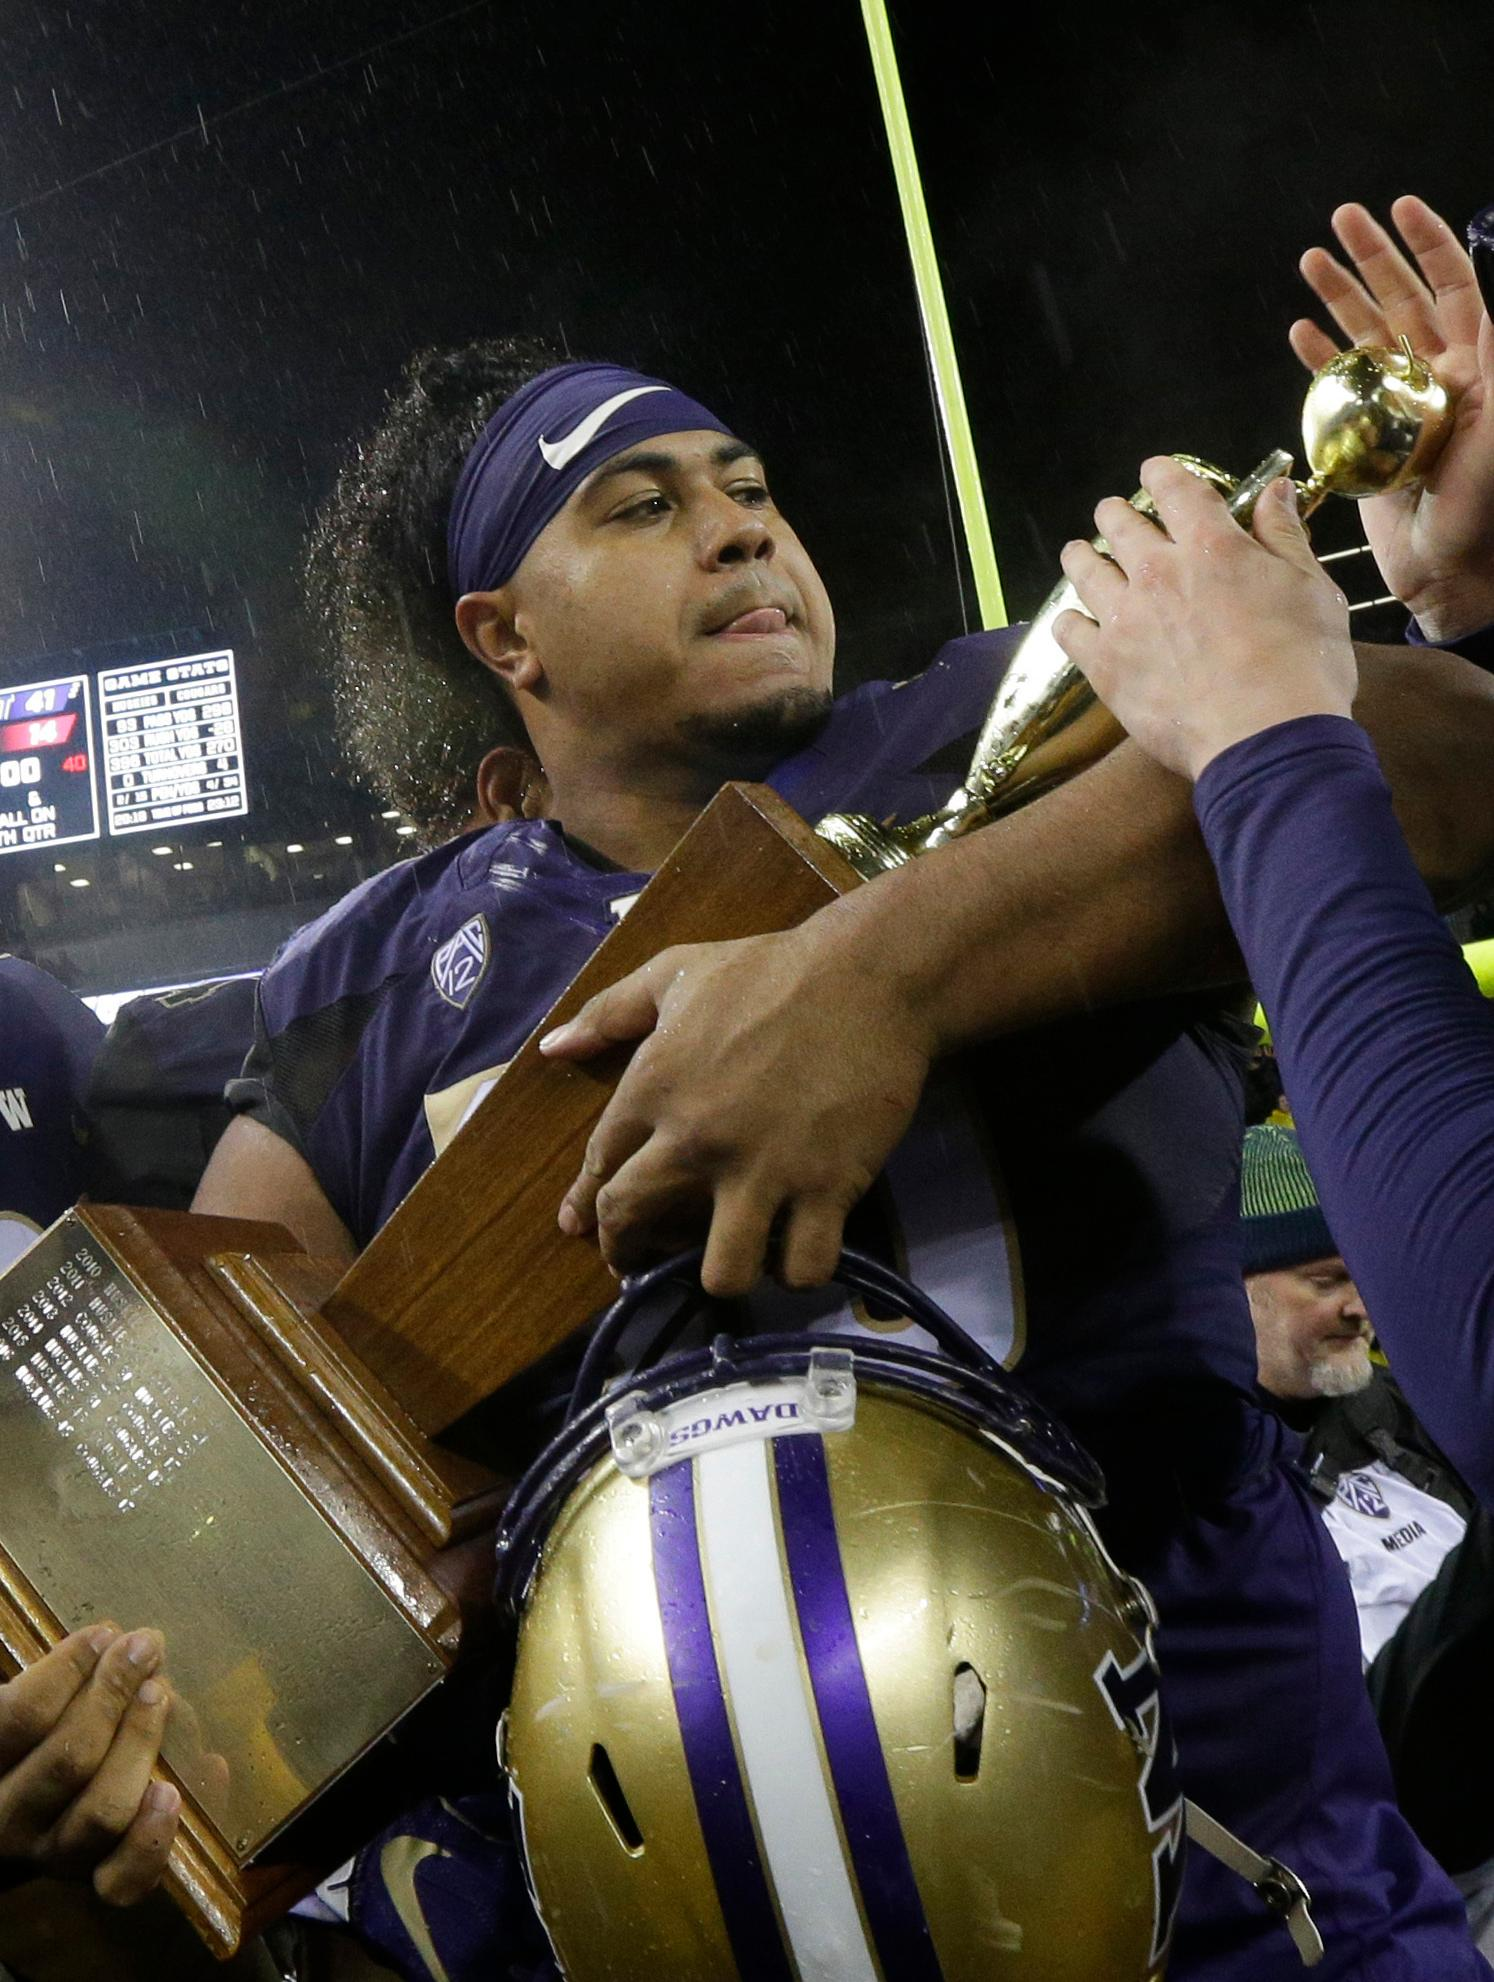 FILE - In this Nov. 25, 2017, file photo, Washington defensive lineman Vita Vea holds the Apple Cup trophy after Washington beat Washington State 41-14 in an NCAA college football game, in Seattle. Vea was selected to the AP All-Conference Pac-12 team announced Thursday, Dec. 7, 2017. (AP Photo/Ted S. Warren, File)